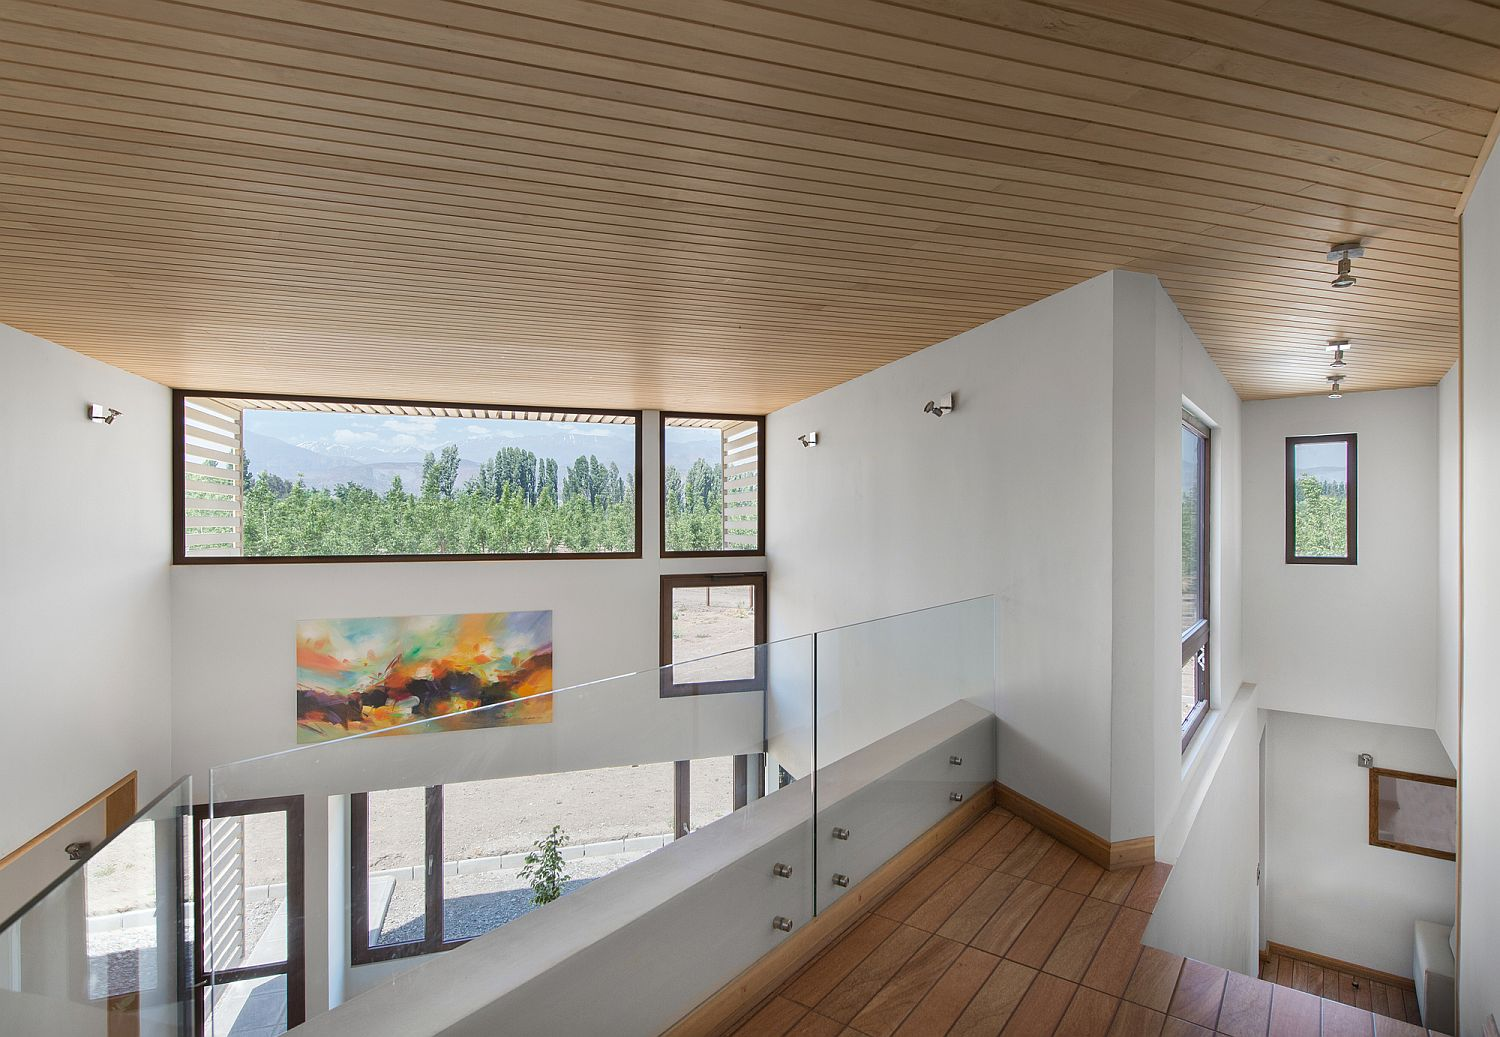 Clerestory windows usher in ample natural light